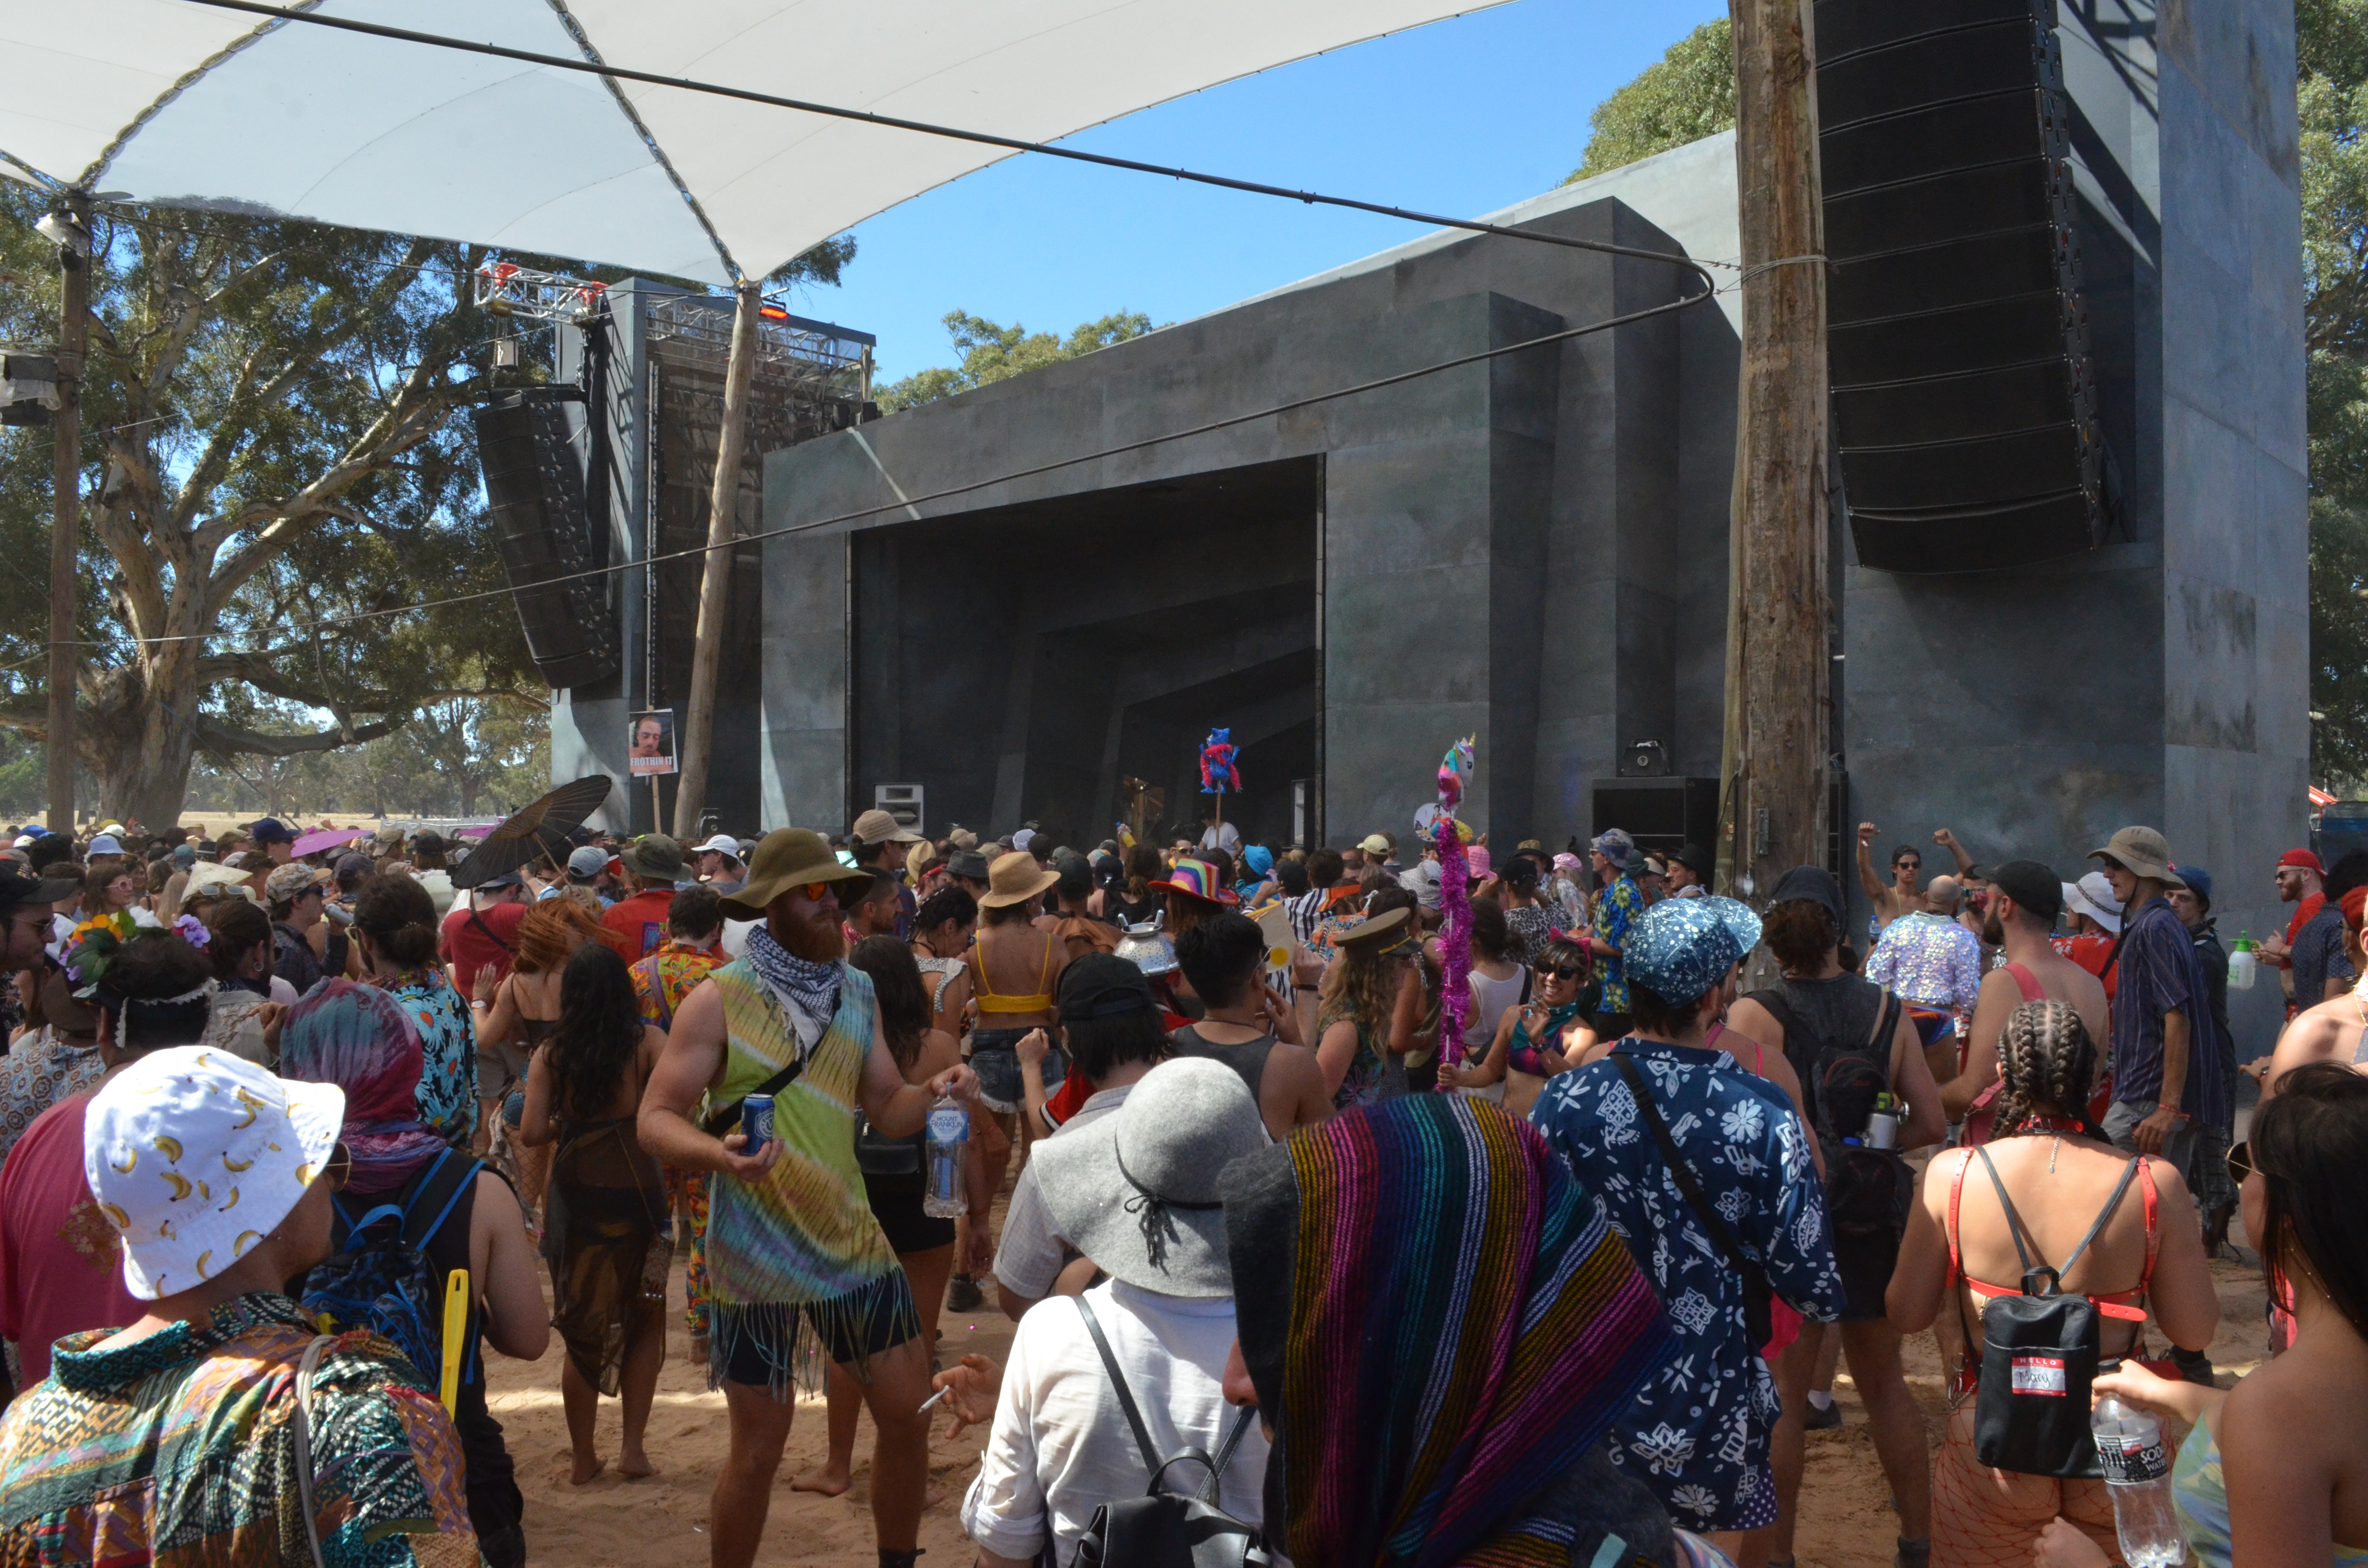 Moyston, Ararat gearing up for Pitch Festival 2019